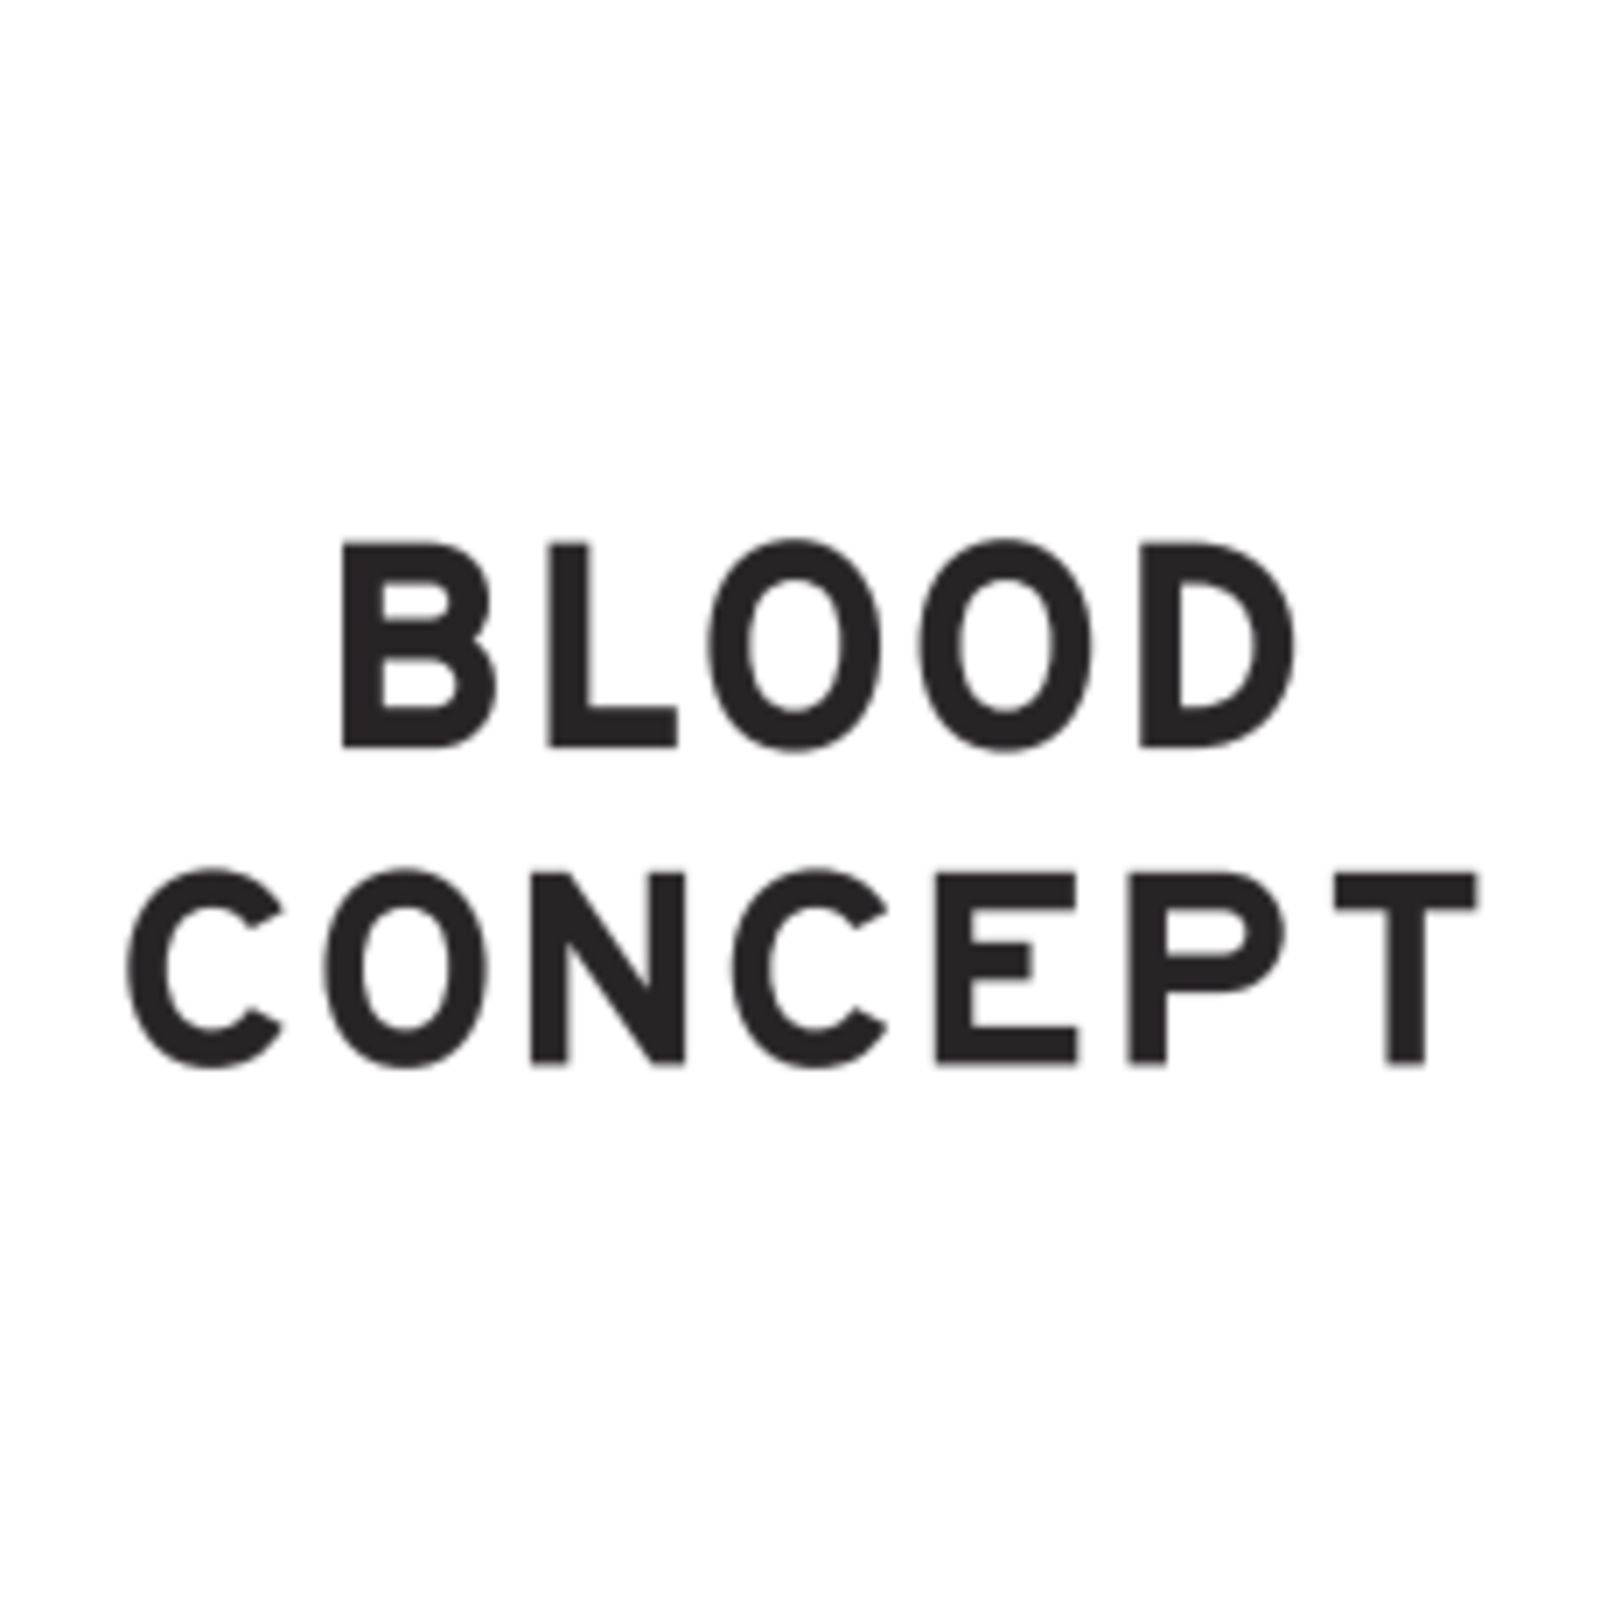 Blood Concept (Bild 1)